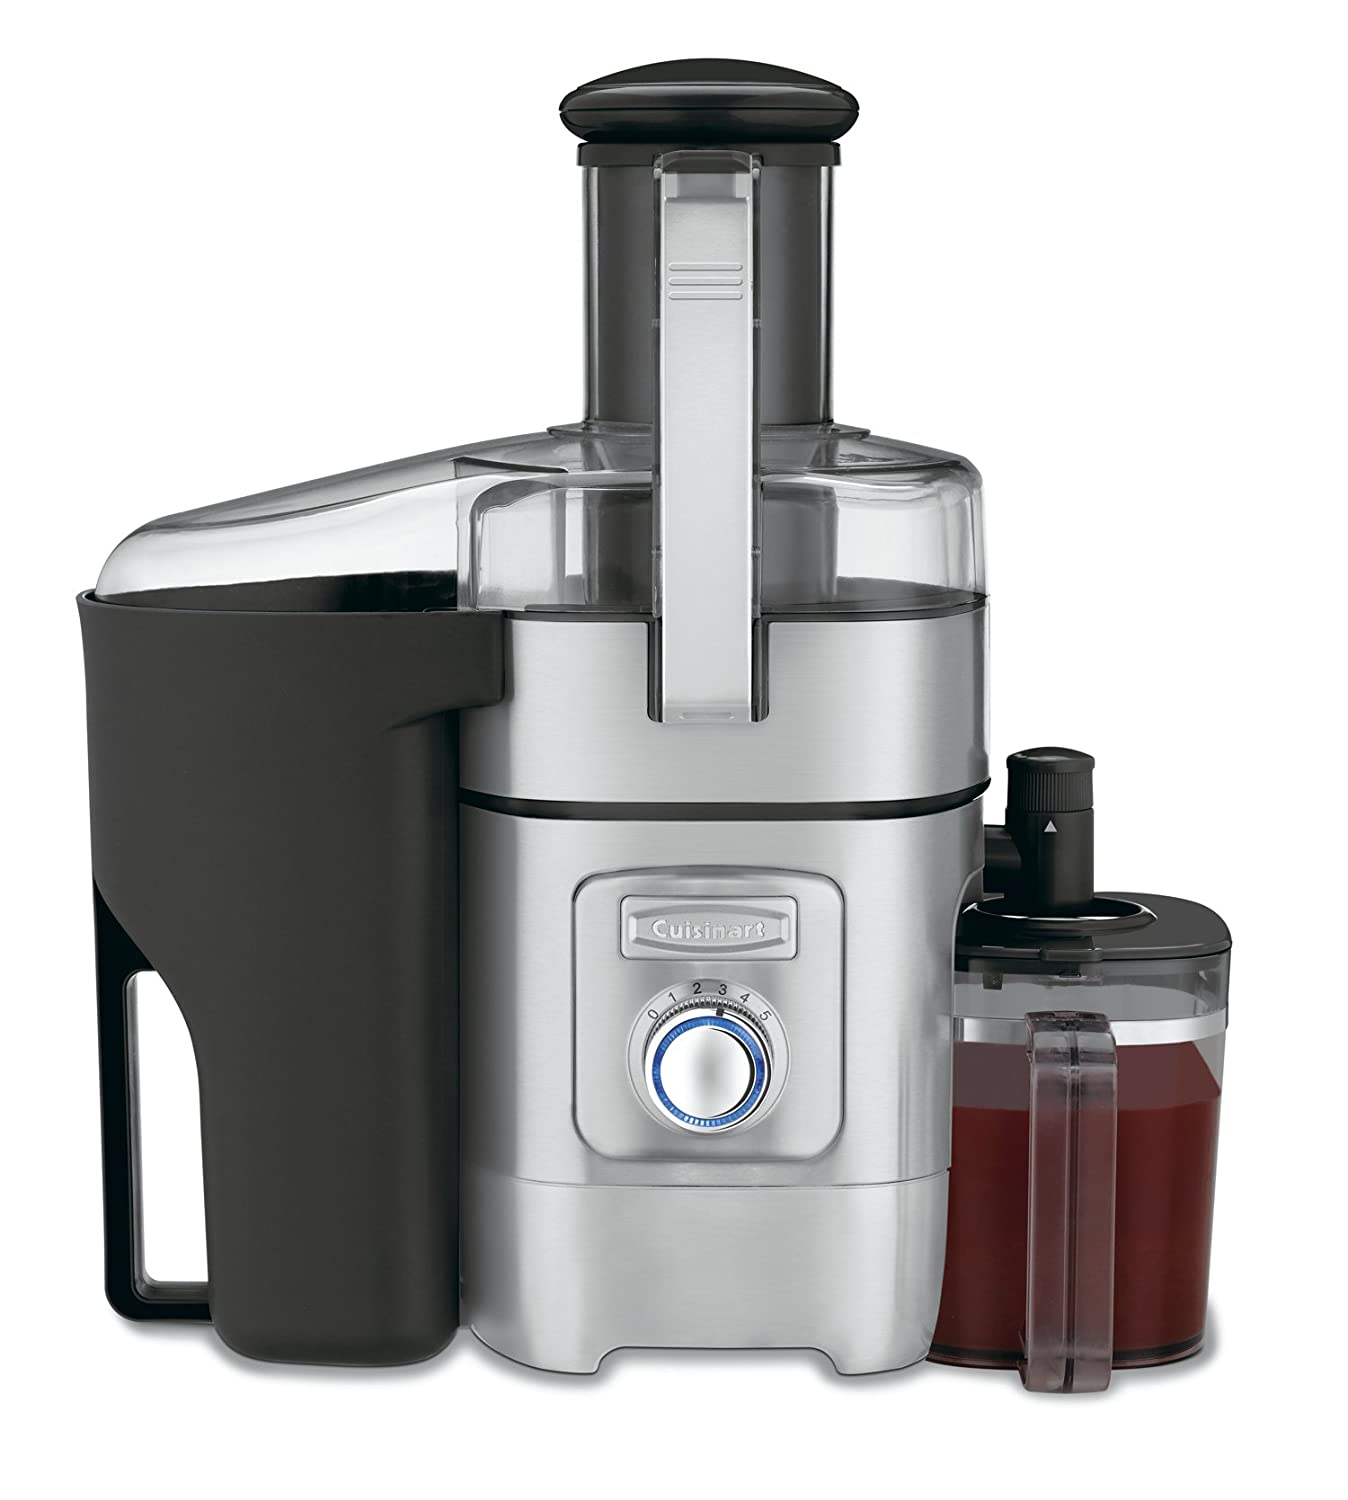 Cuisinart Juicer Black Friday Deal 2019